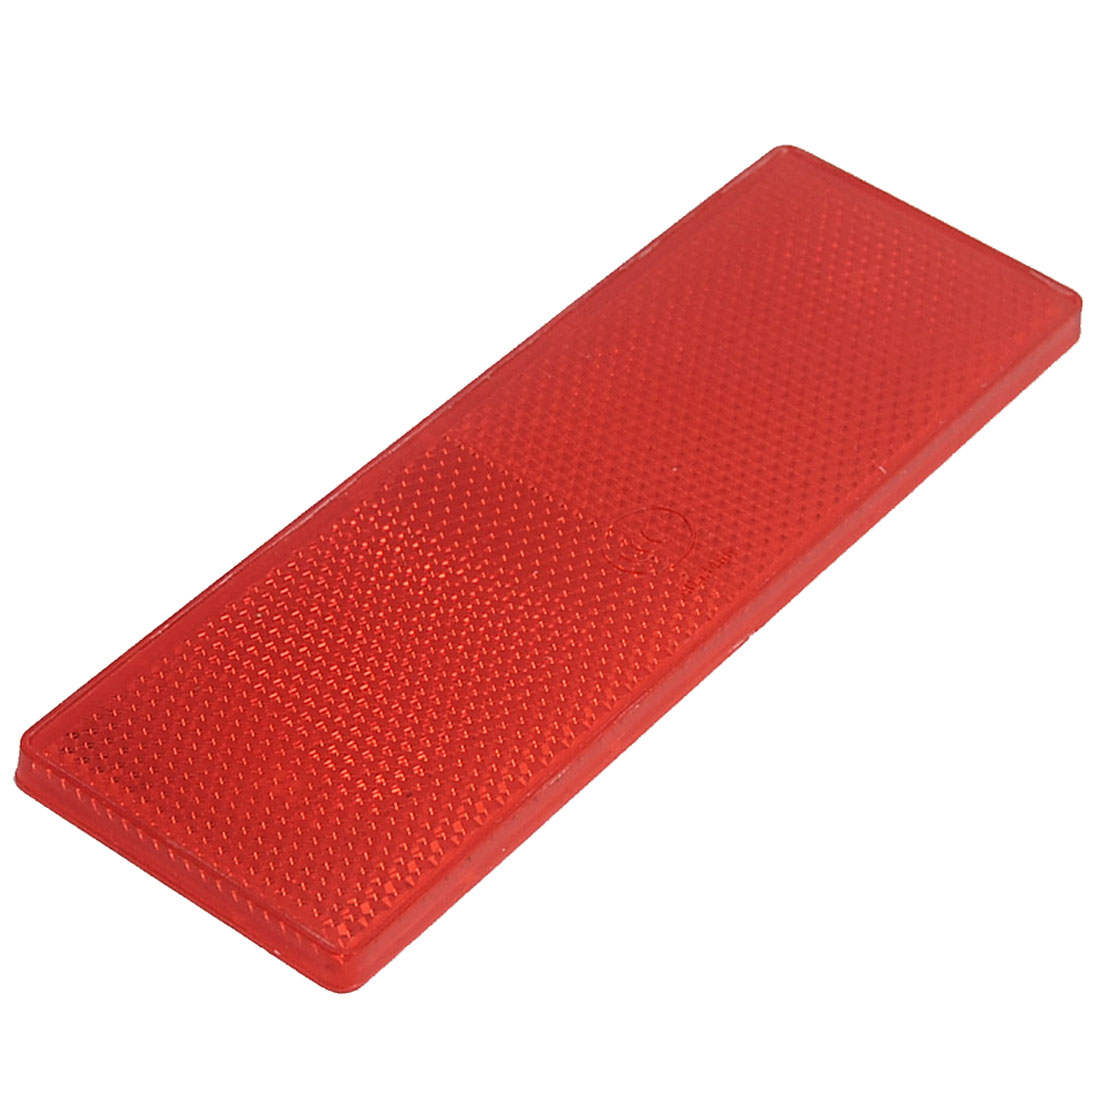 Plastic Rectangle Reflective Warning Reflector Red for Vehicle Safety